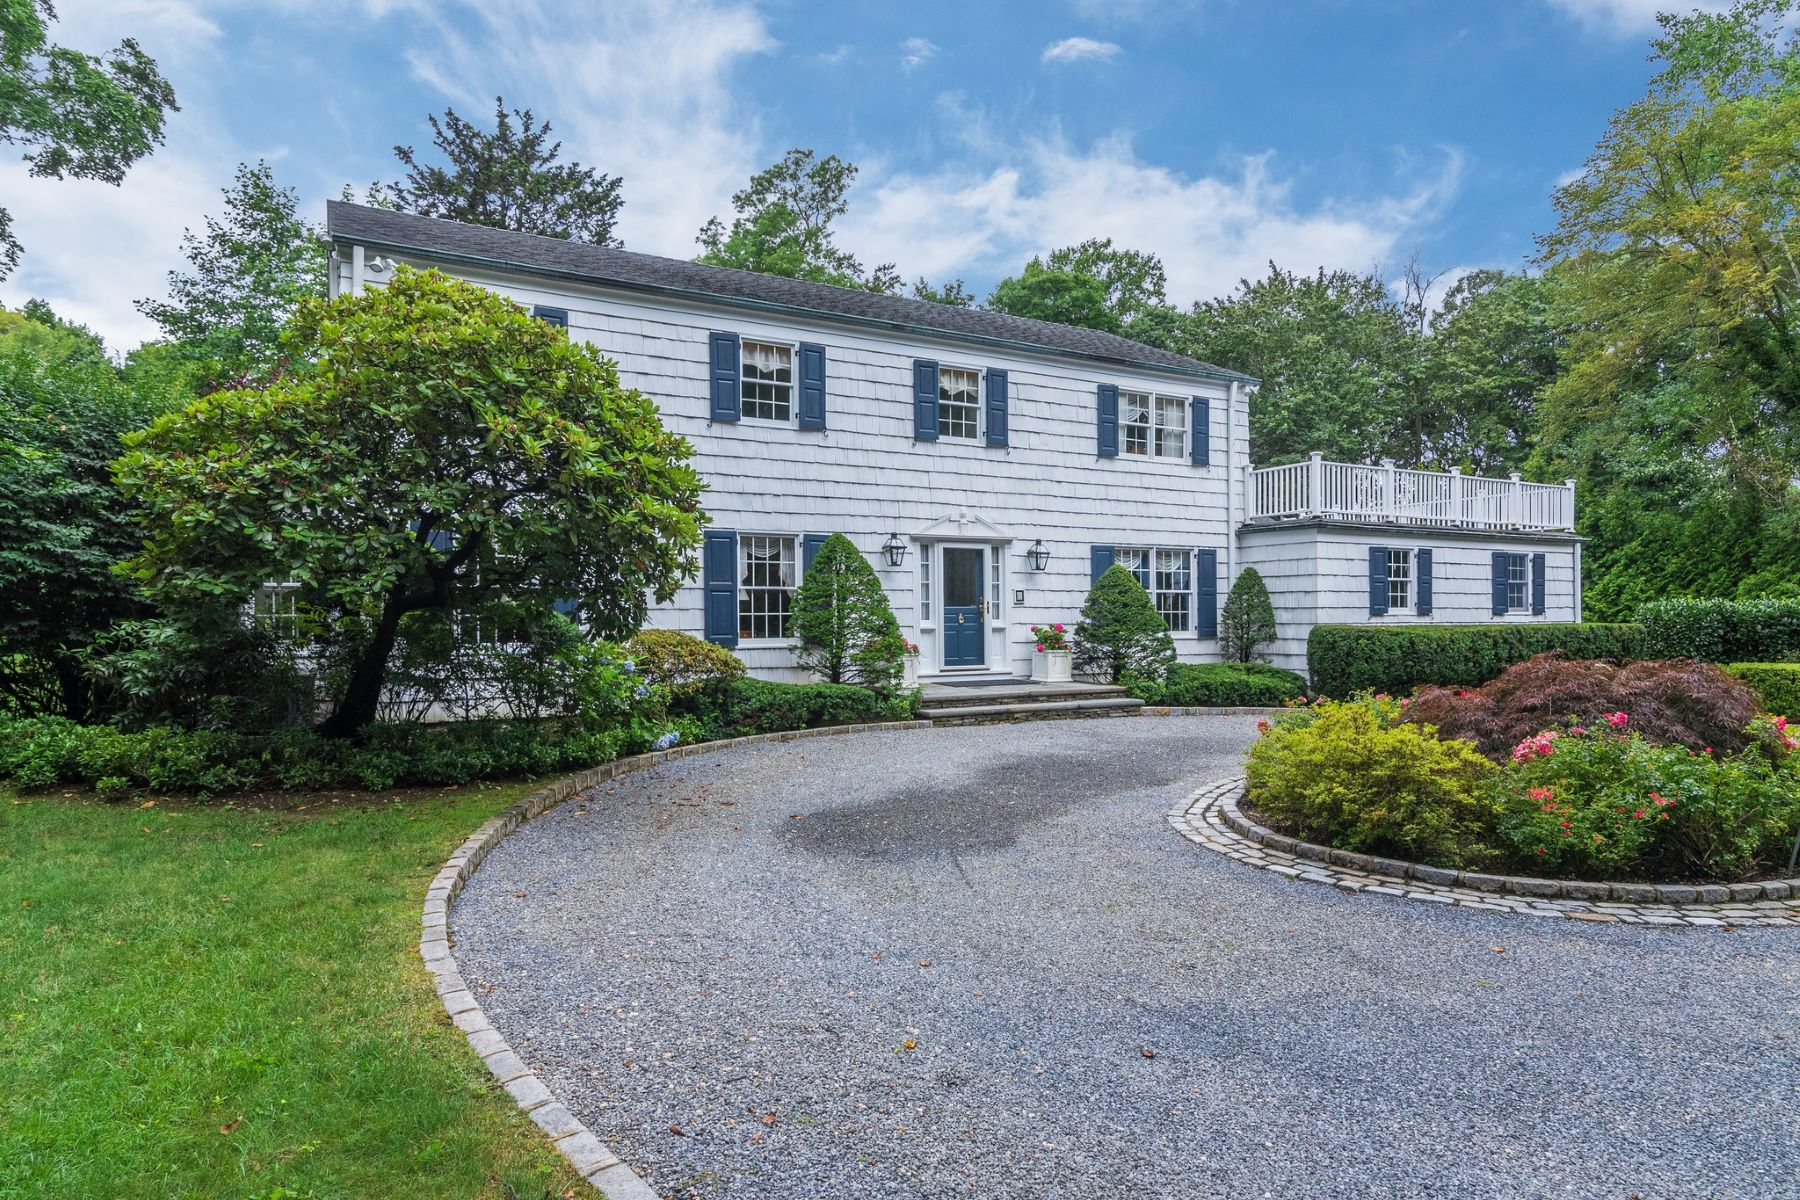 Single Family Homes for Active at Locust Valley 1 Lewis Ln Locust Valley, New York 11560 United States